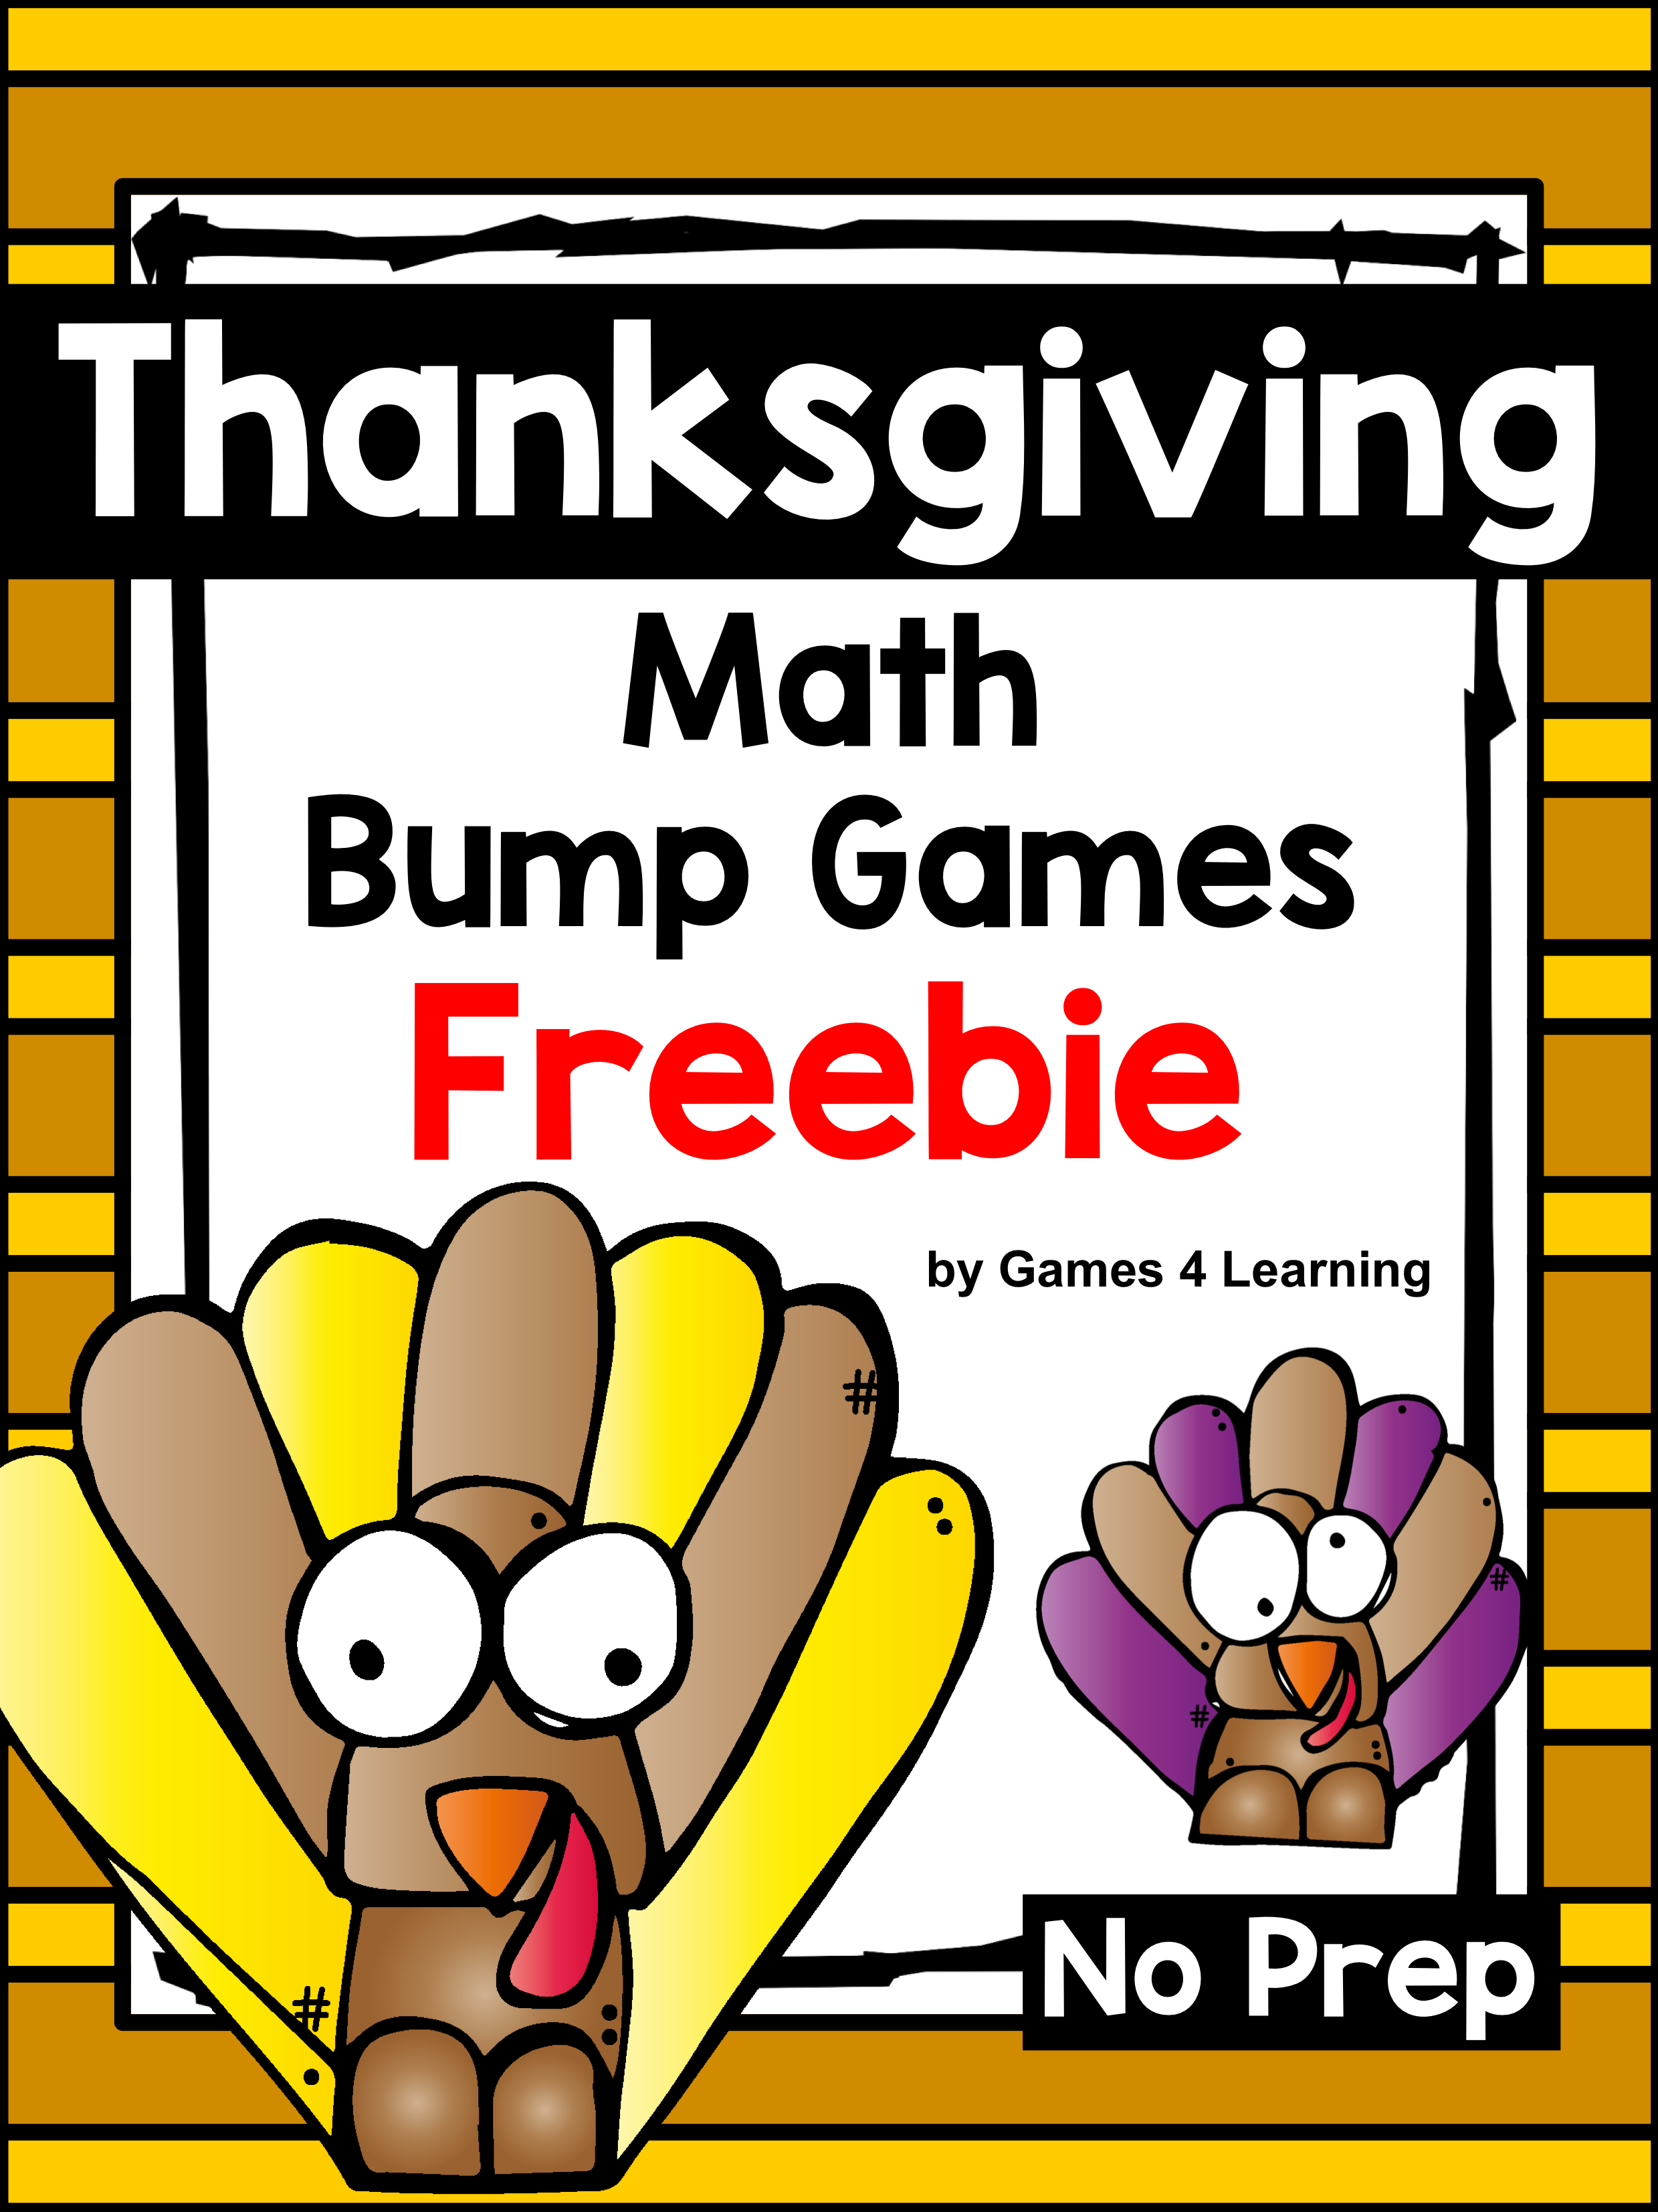 Free Thanksgiving Math Activities Bump Games